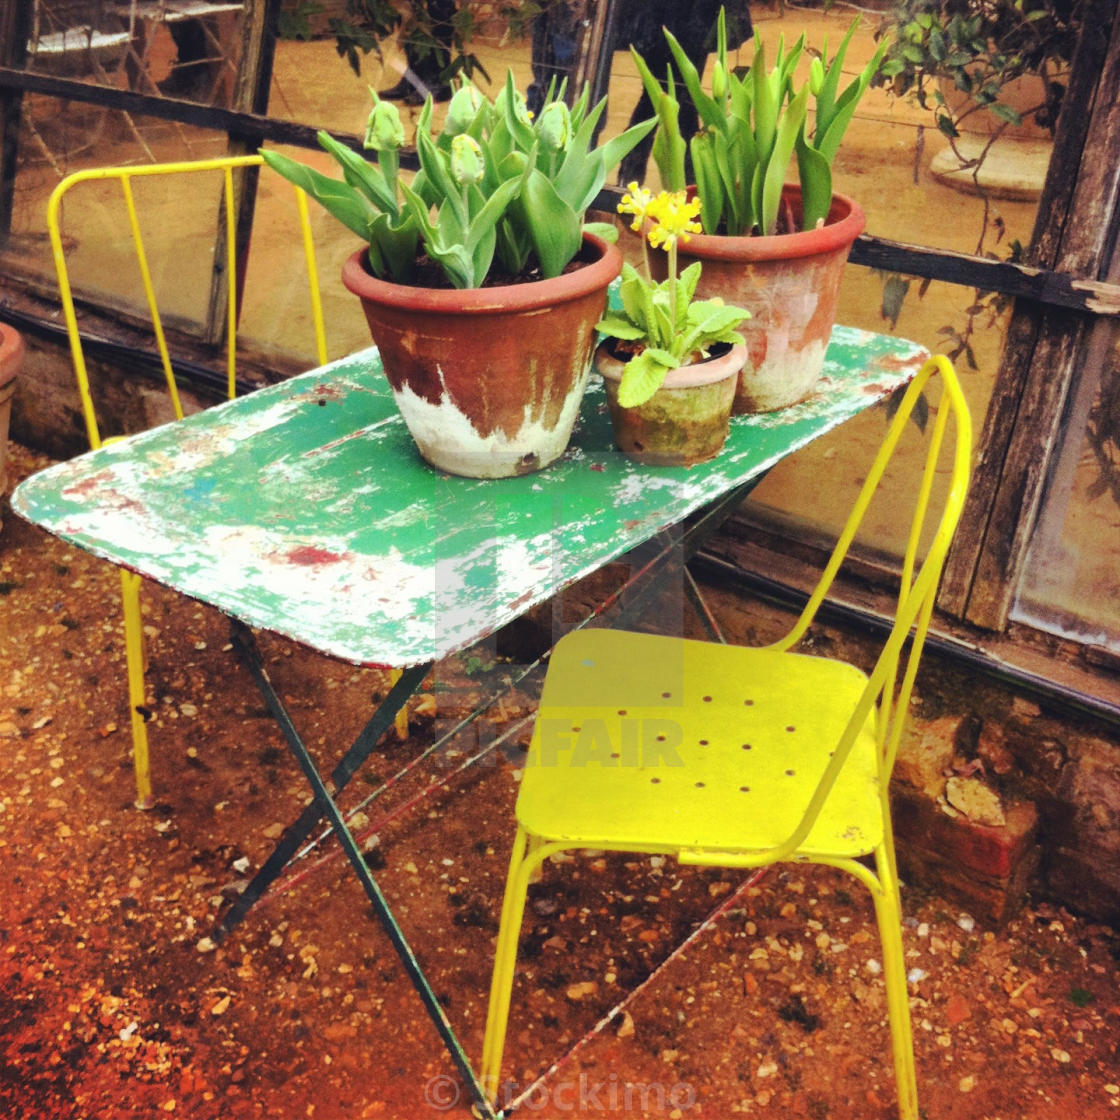 Shabby Chic Garden Furniture   License For £31.00 On Picfair